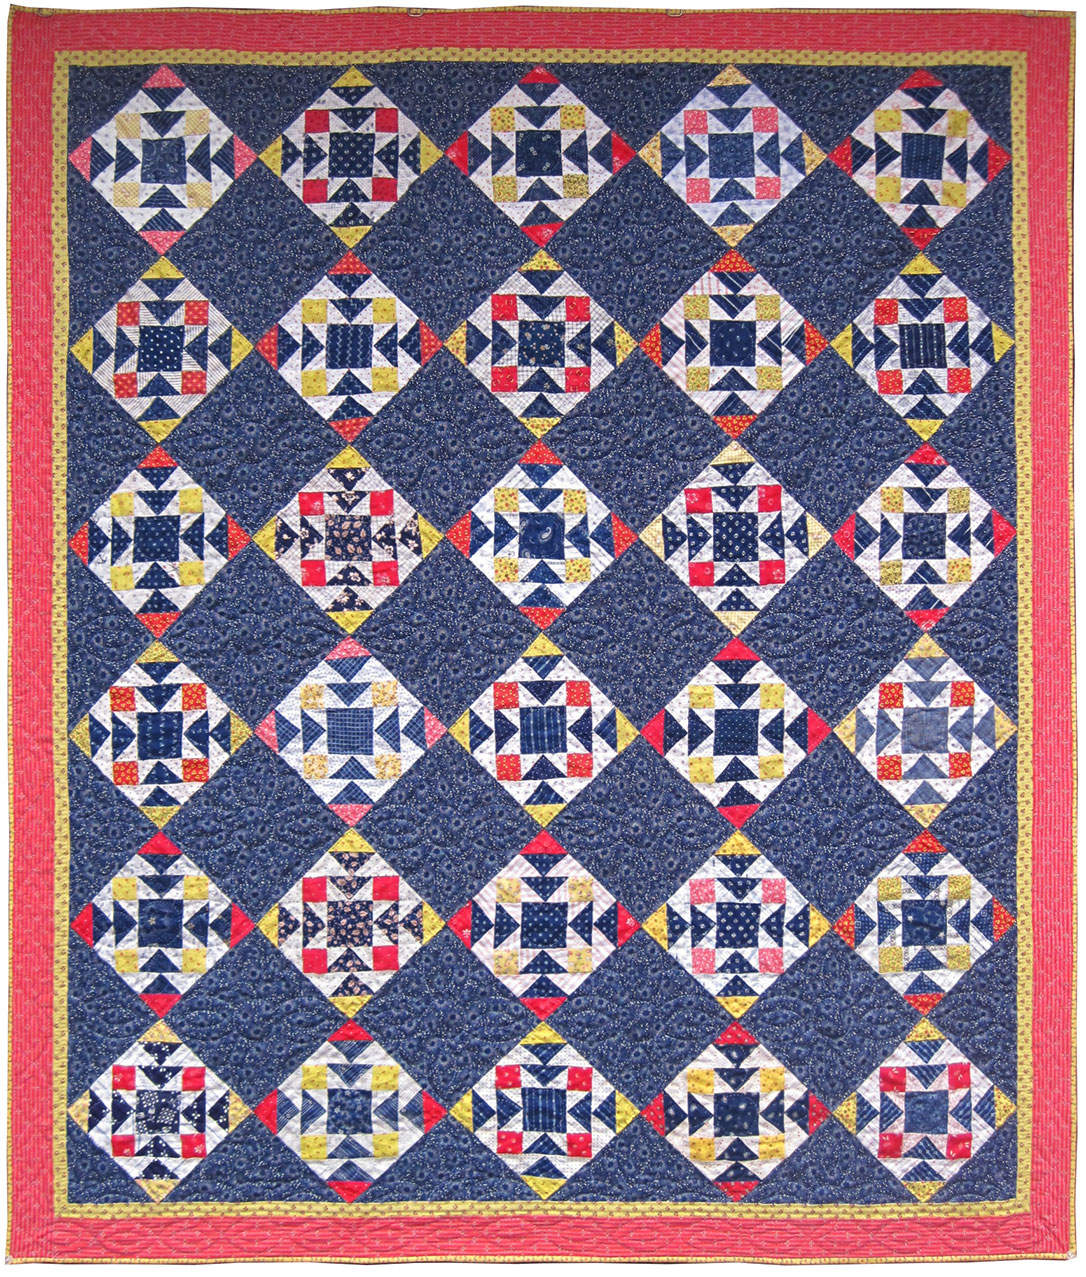 9 Patch And Snowball Quilt Q Is For Quilter